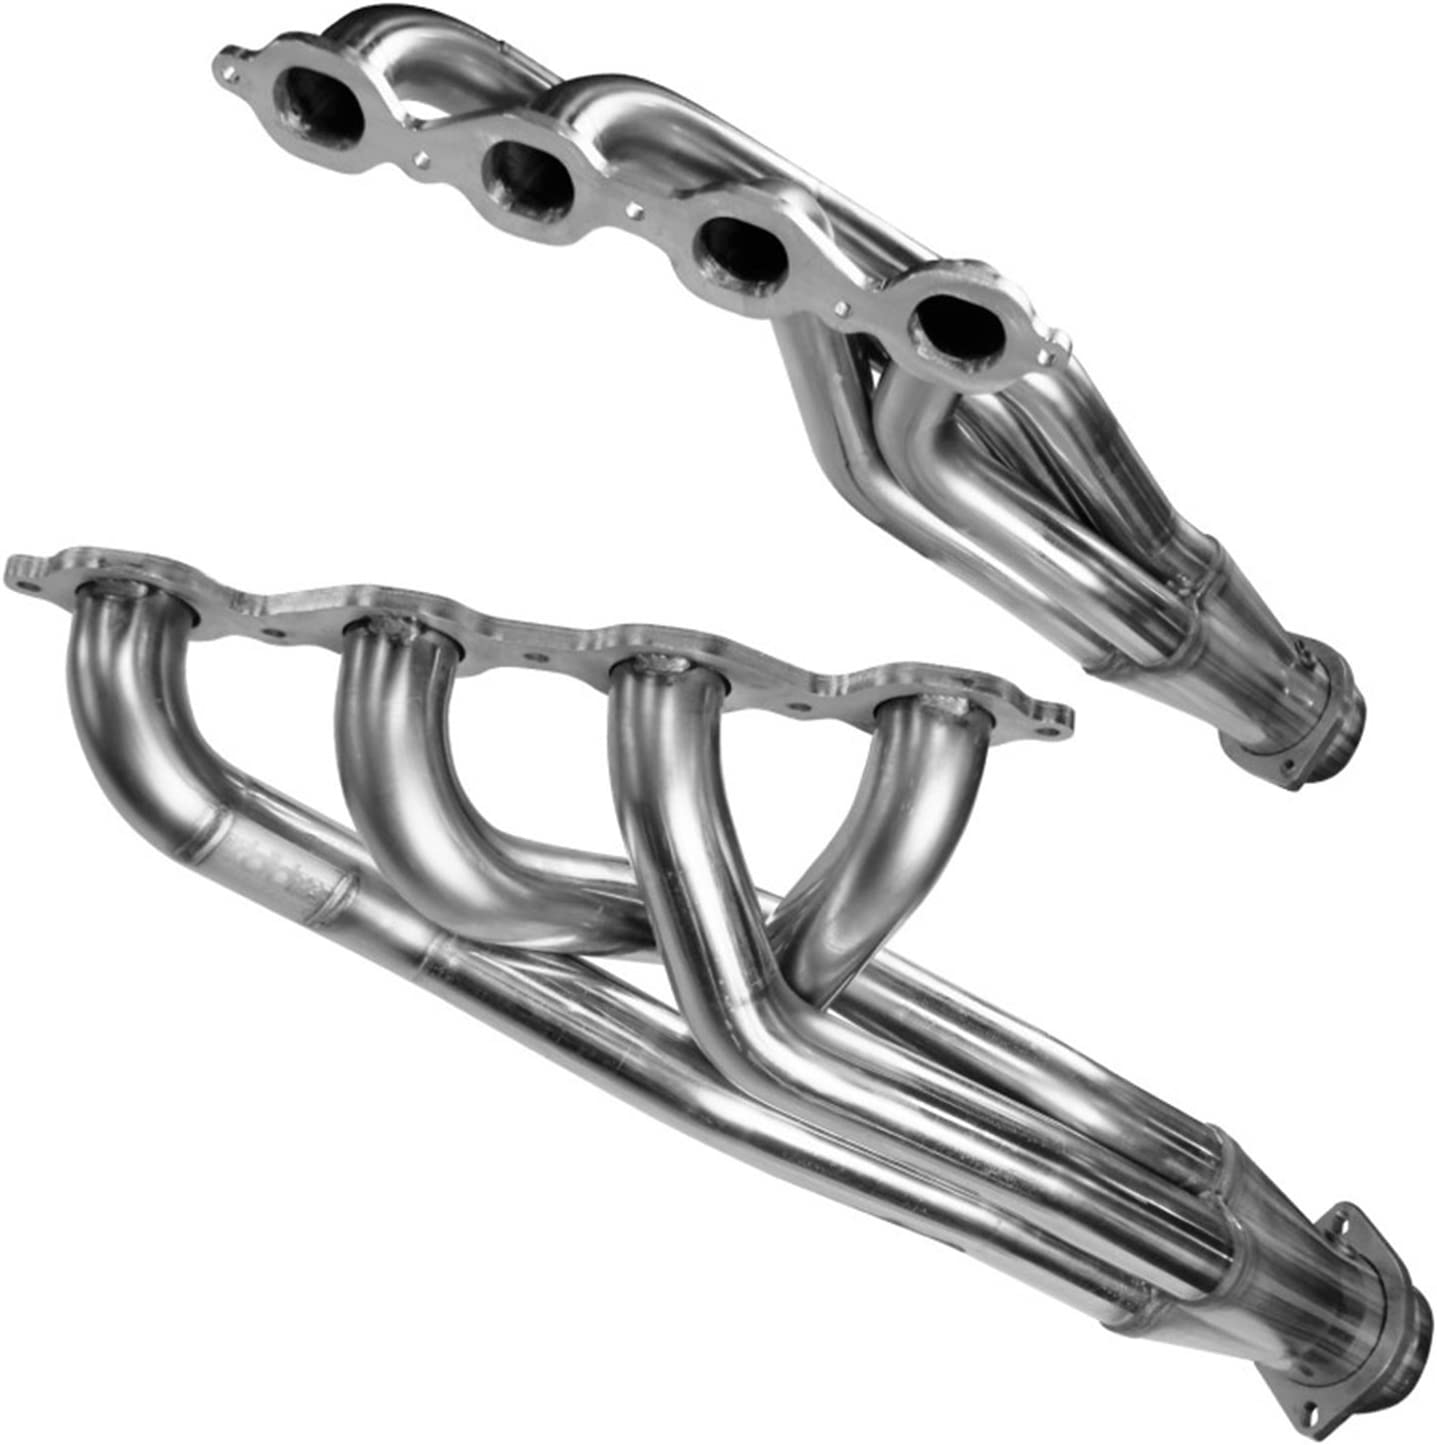 Kooks Custom Headers 28602401 Stainless Steel Headers